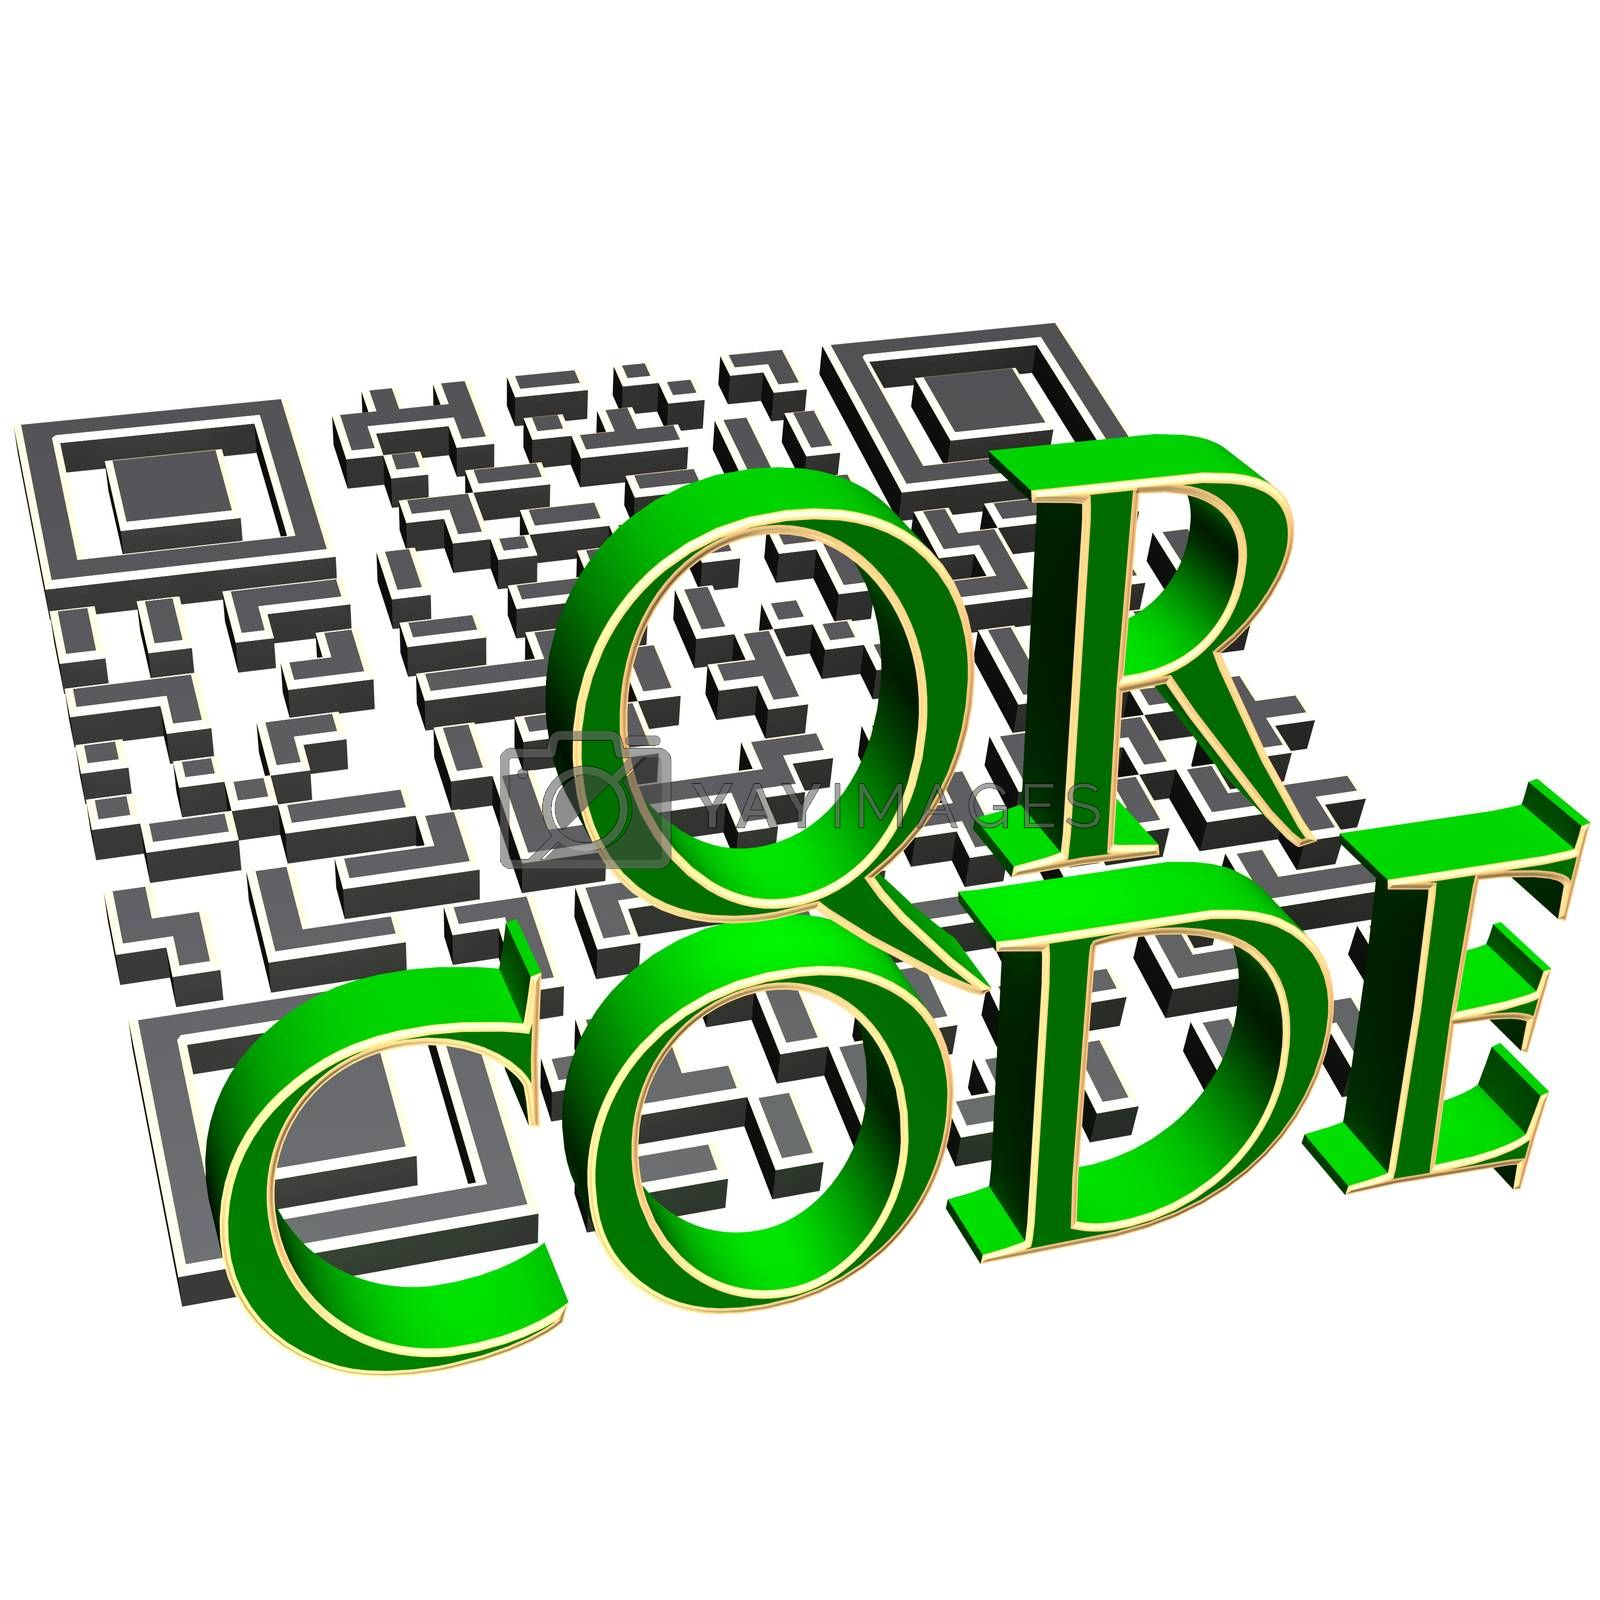 Royalty free image of QR code concept by richter1910